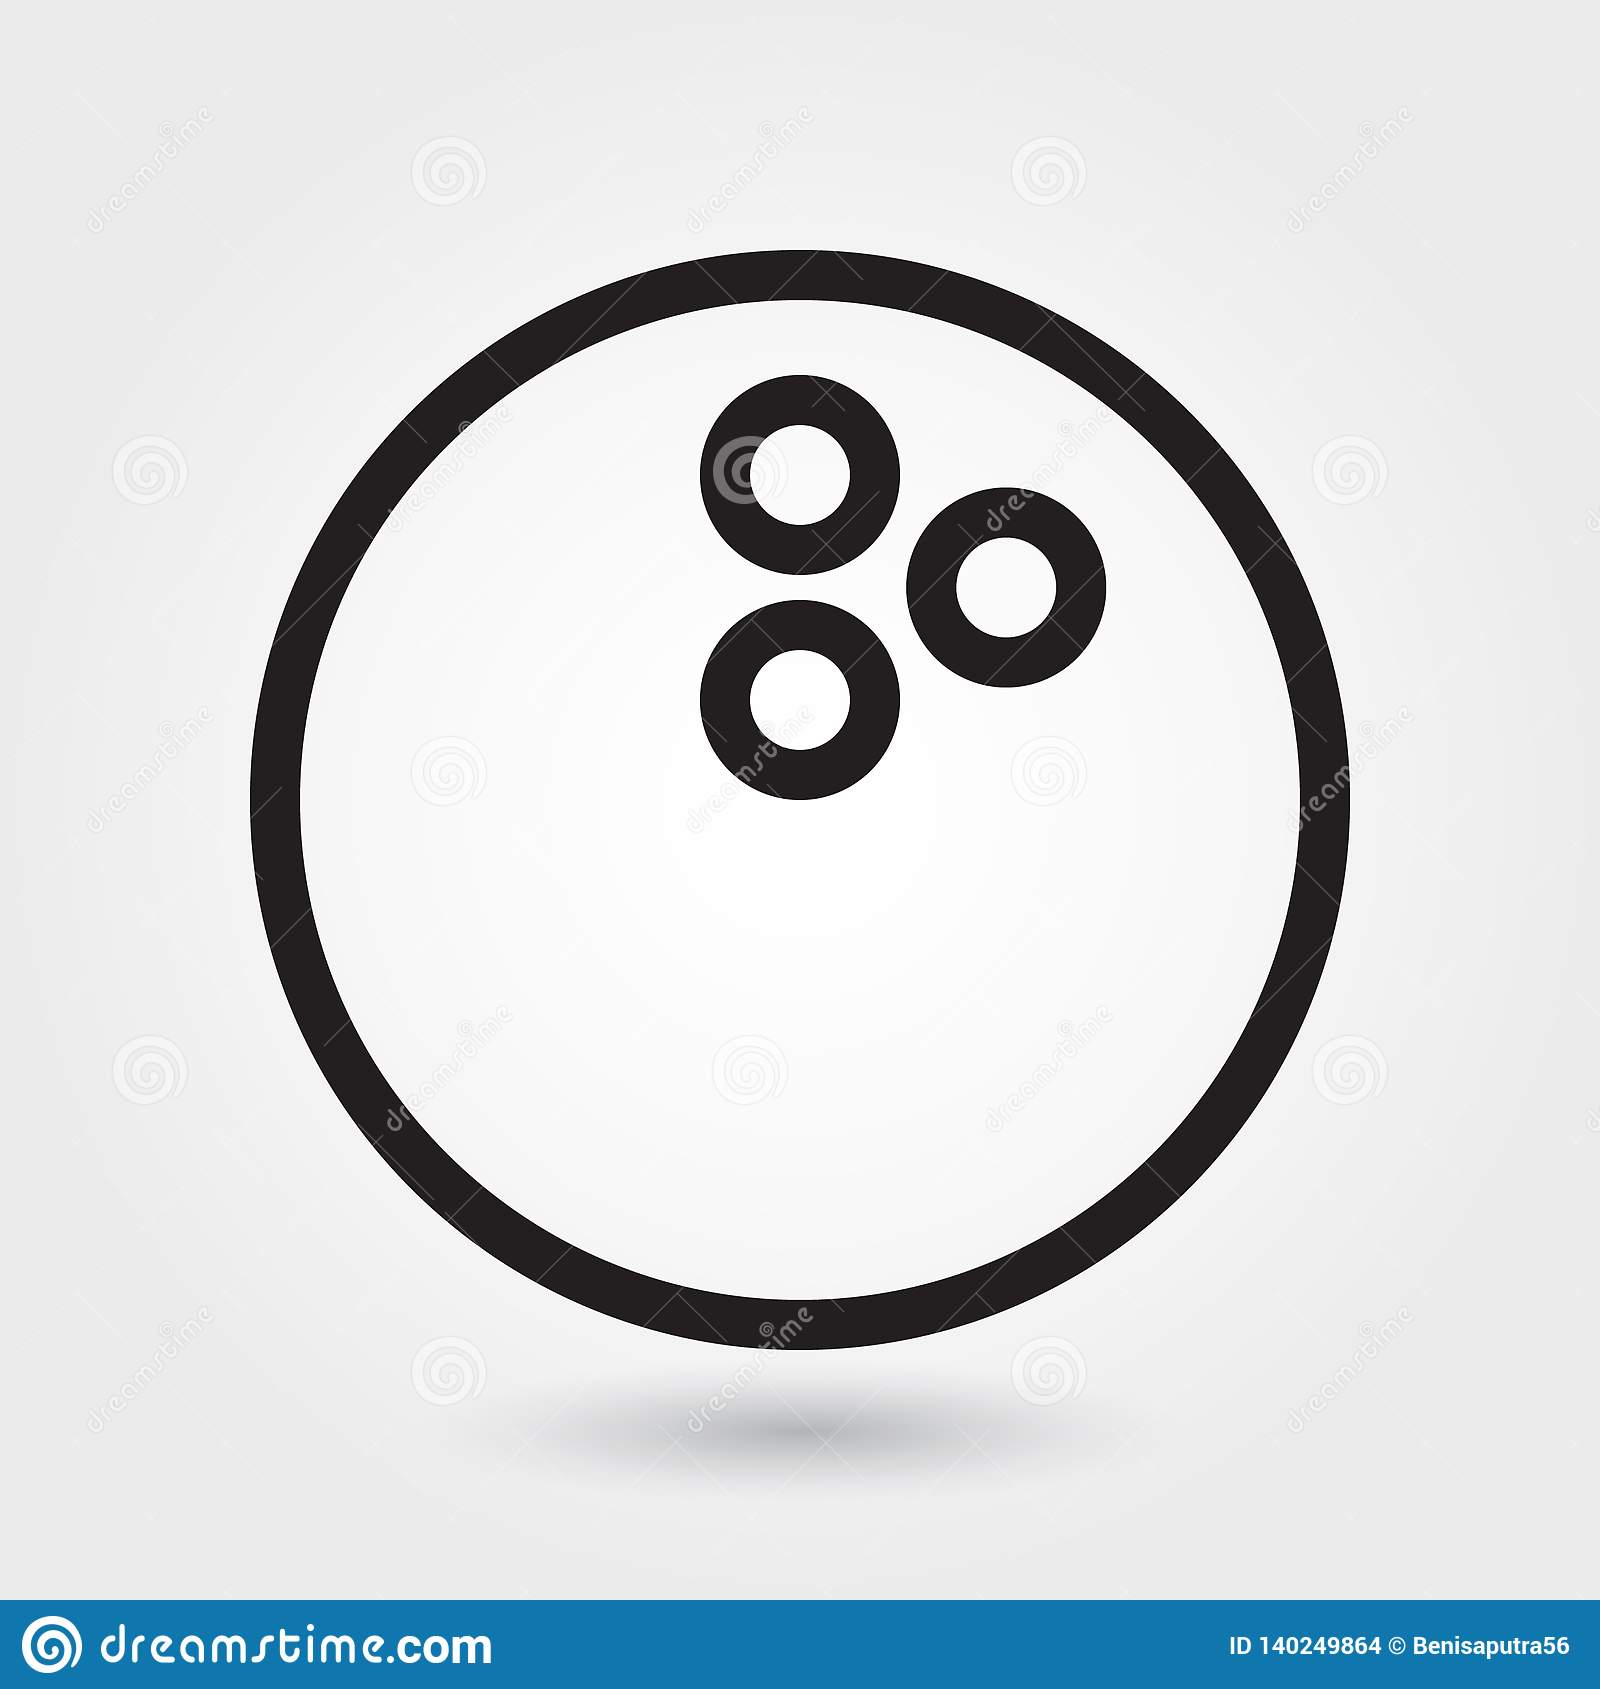 Bowling vector icon, bowling ball icon, sports ball symbol. Modern, simple outline, outline vector